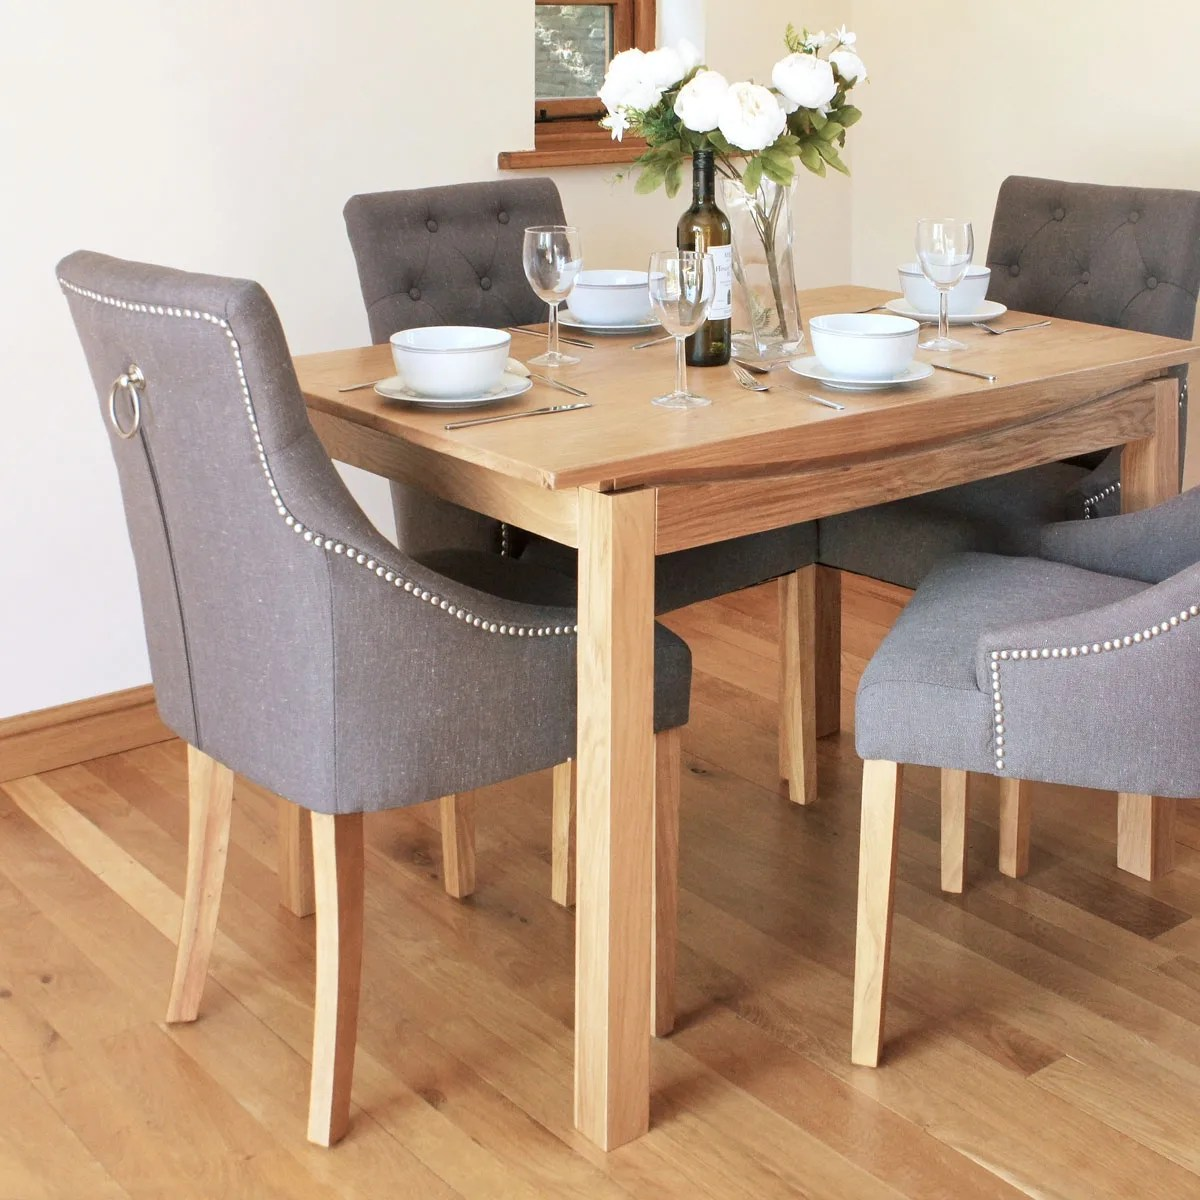 Modern Small Dining Tables Roscoe Contemporary Oak Small Dining Table Was 375 00 Now